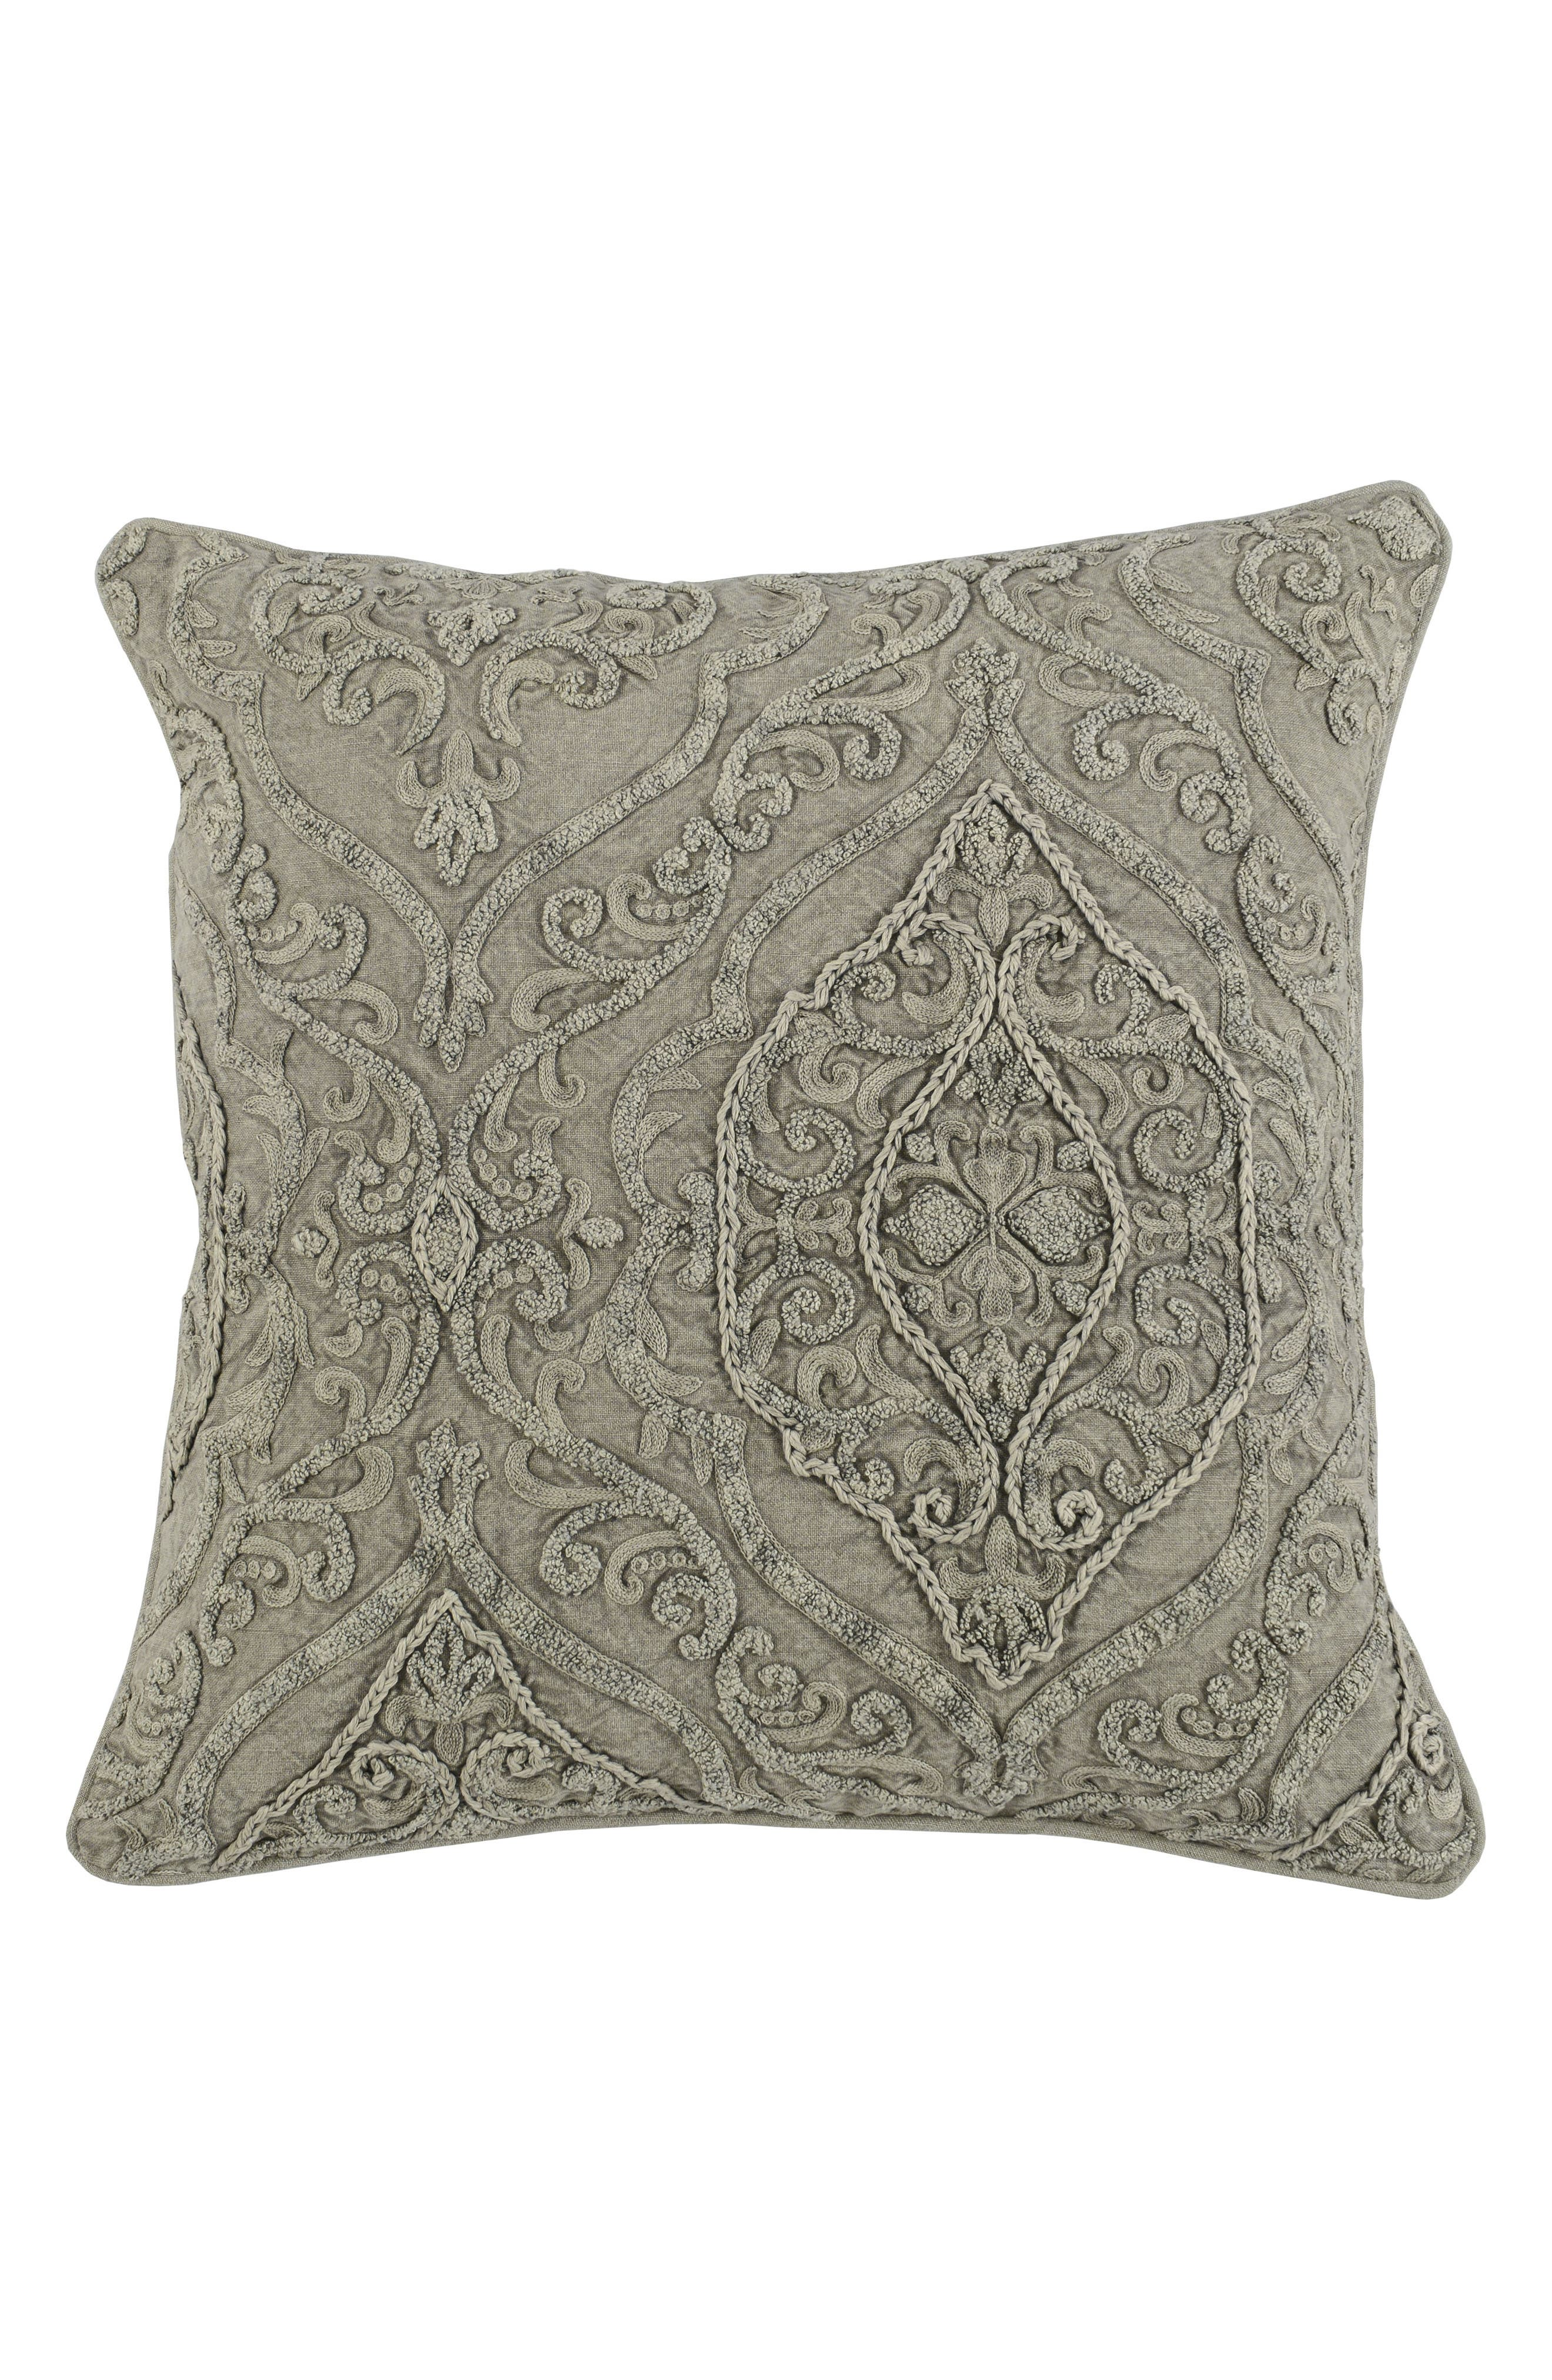 Abilene Accent Pillow,                         Main,                         color, NATURAL